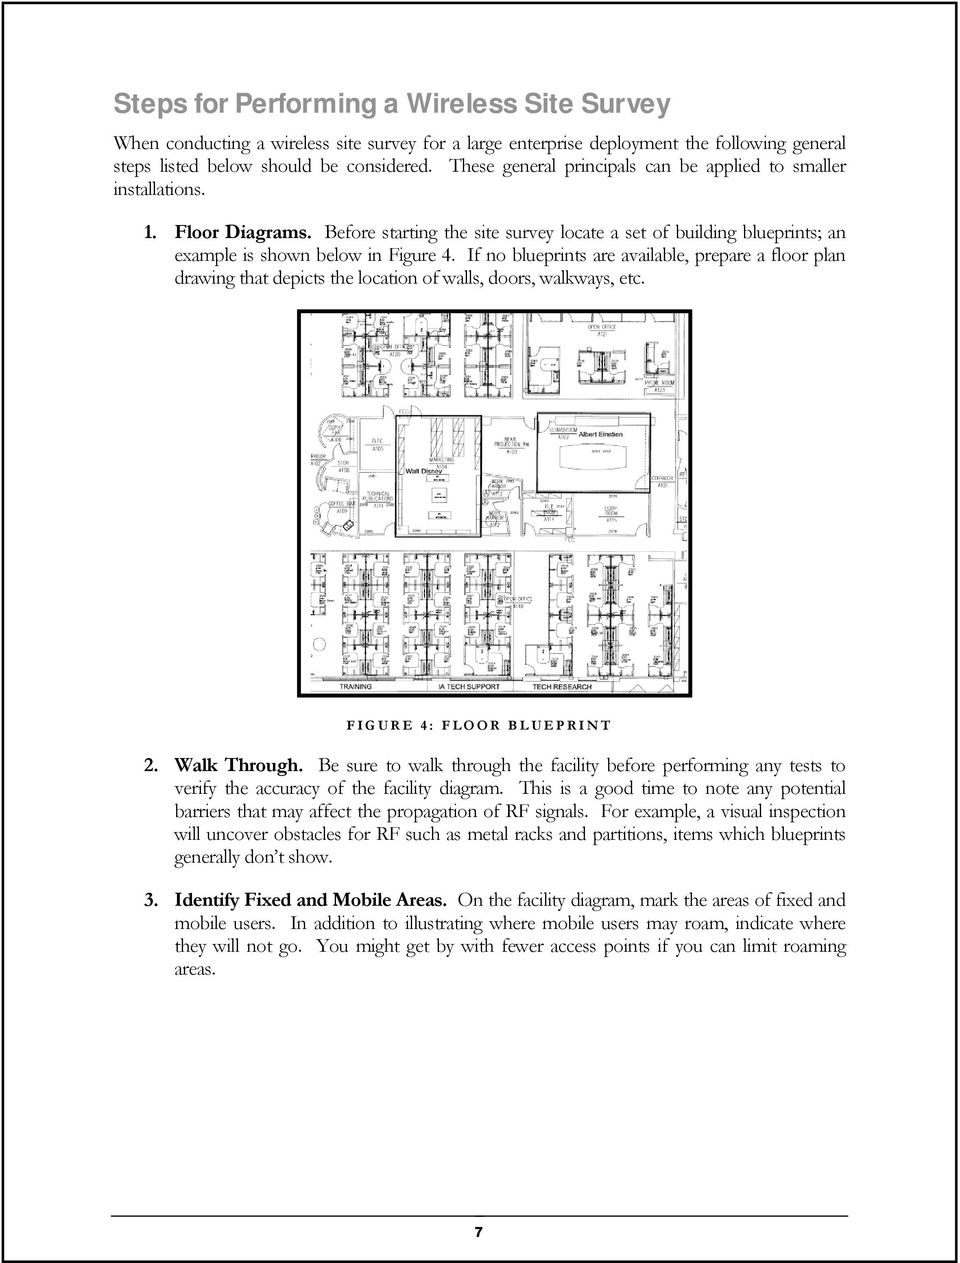 If no blueprints are available, prepare a floor plan drawing that depicts the location of walls, doors, walkways, etc. FIGURE 4: FLOOR BLUEPRINT 2. Walk Through.